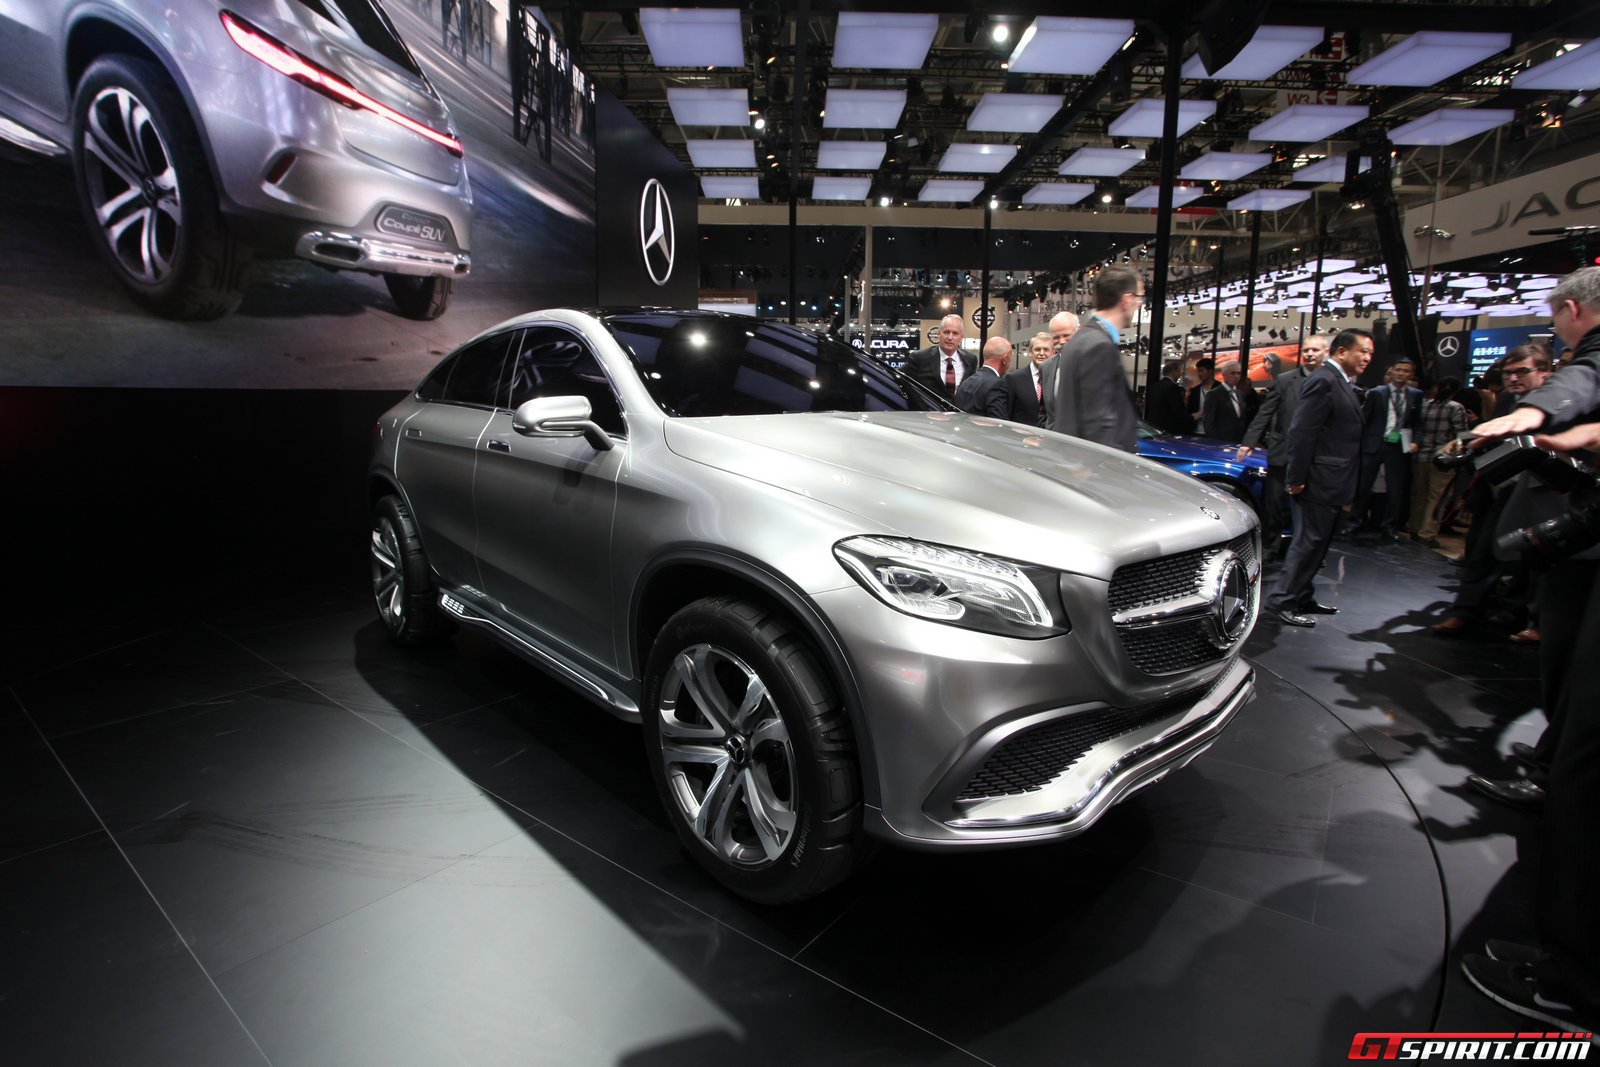 Mercedes benz considers separate suv line benzinsider for Mercedes benz coupe suv